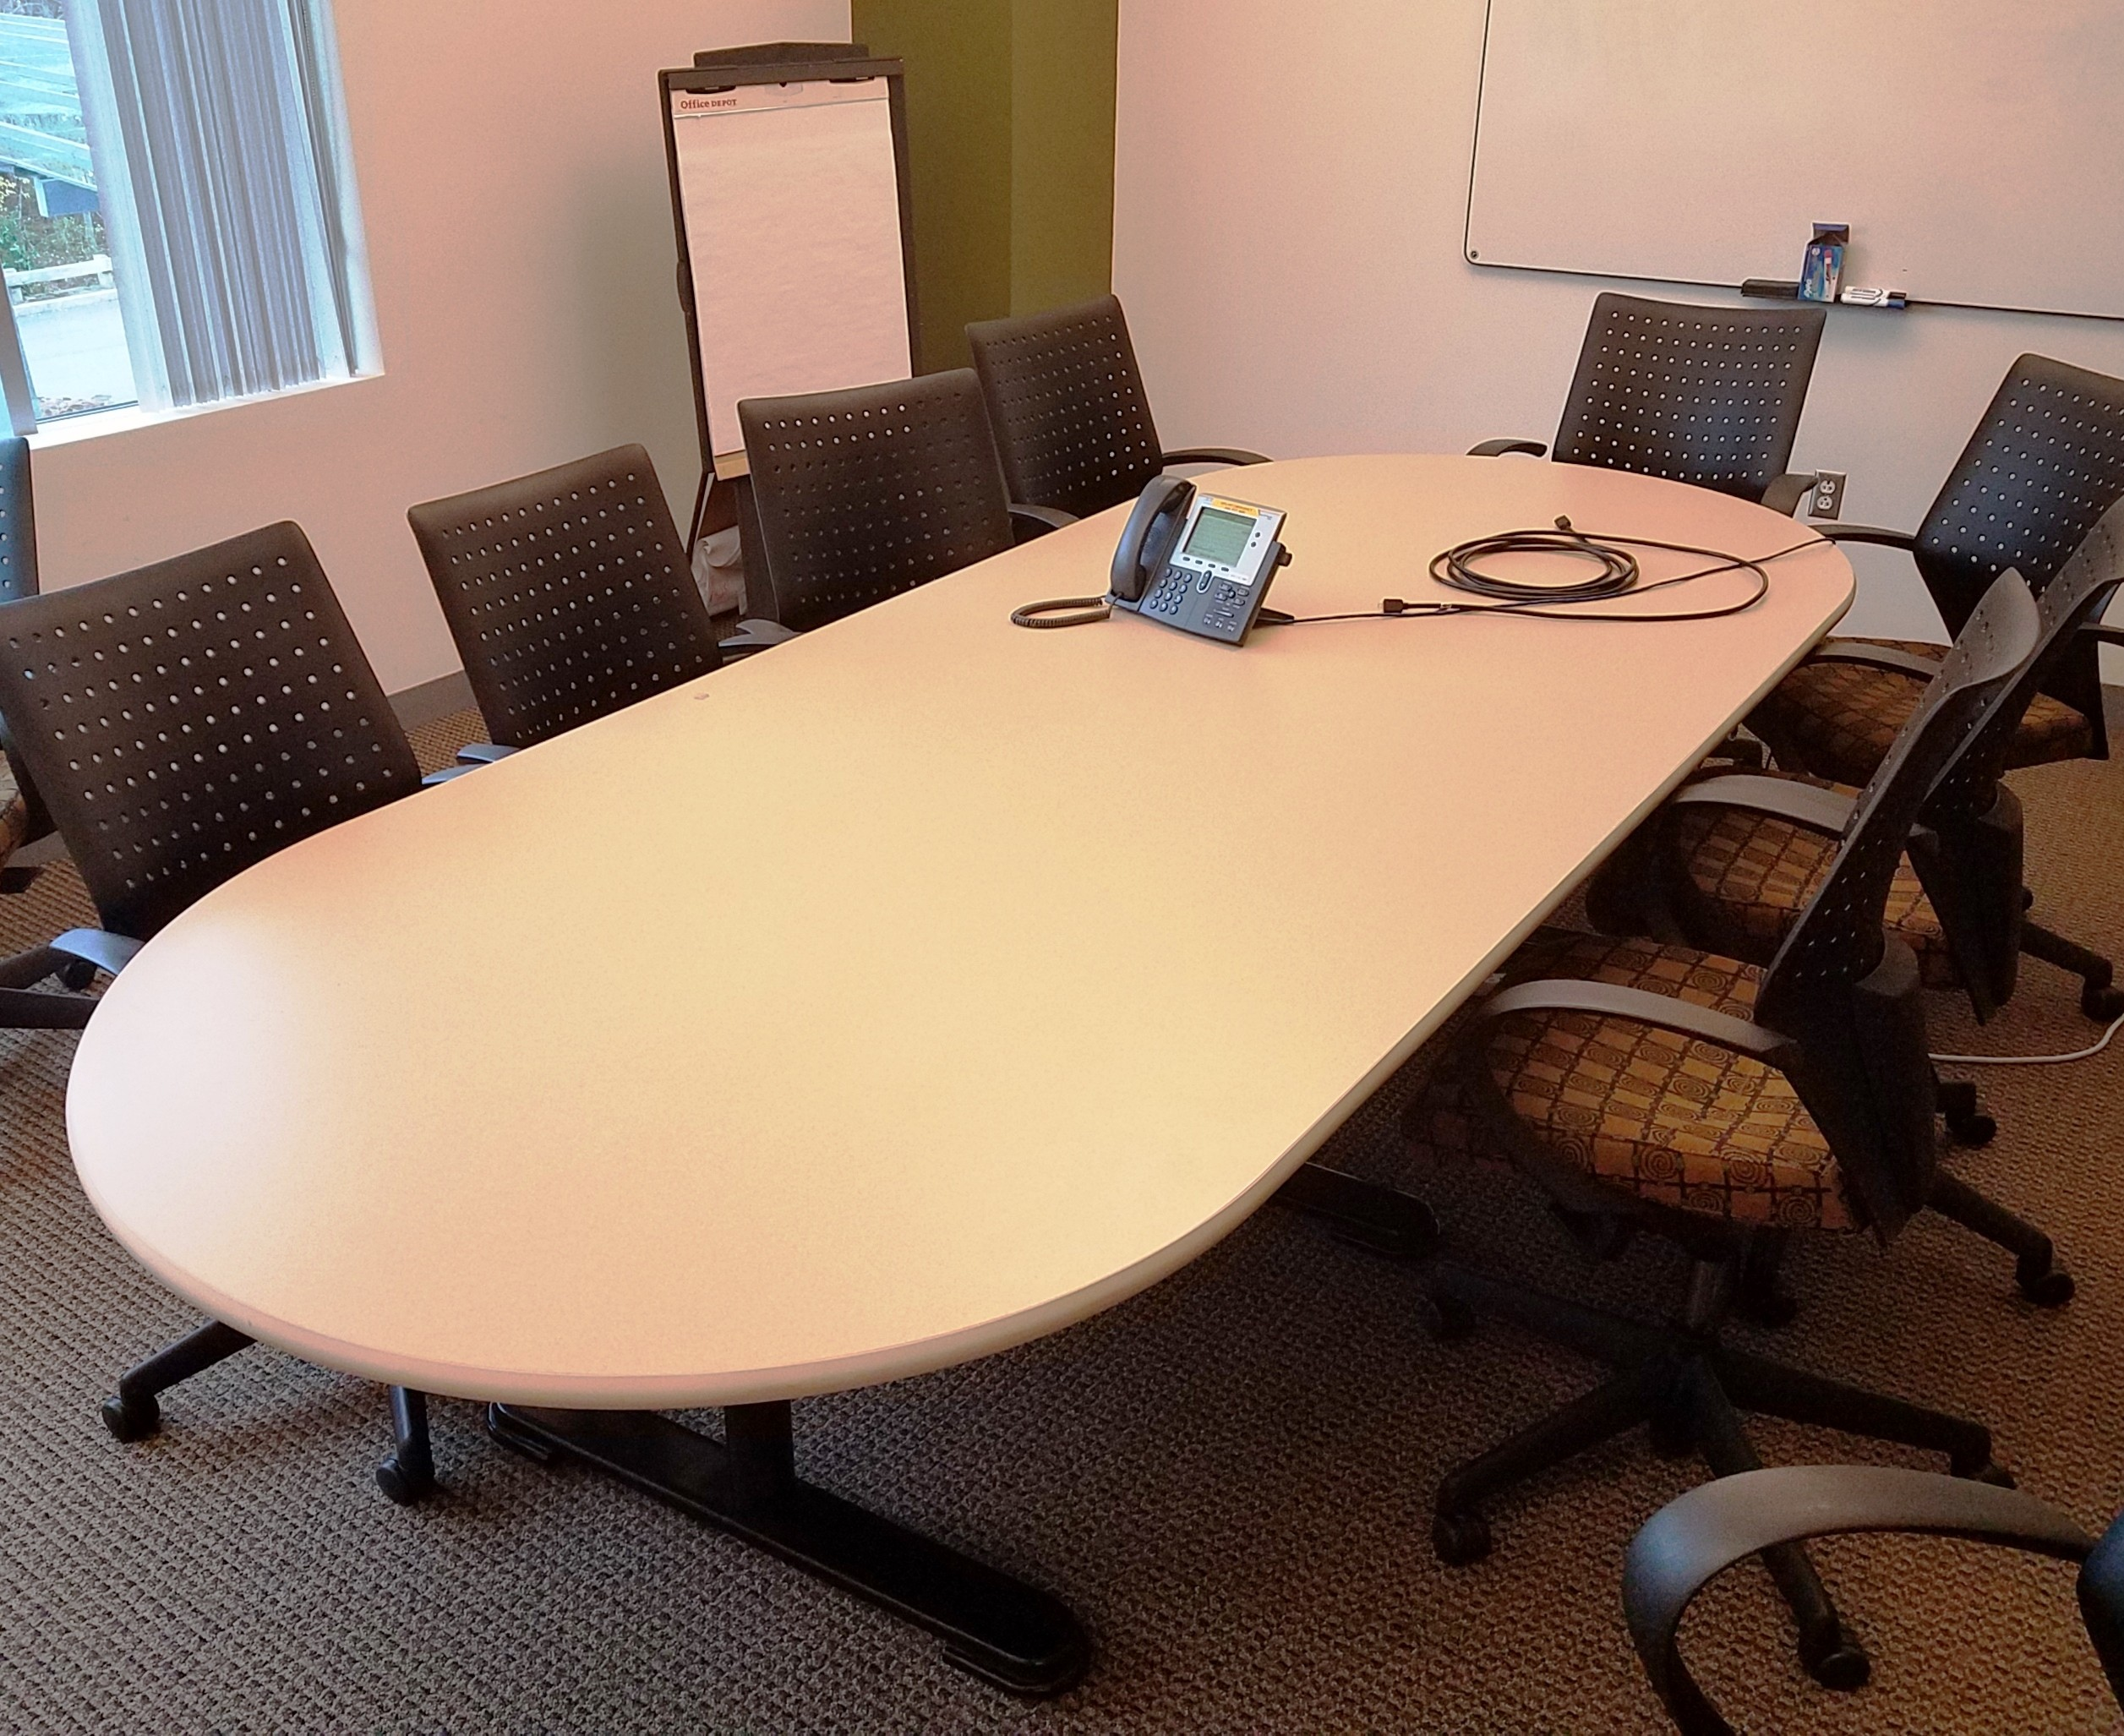 Vecta Laminate Racetrack Conference Table - 5 ft conference table